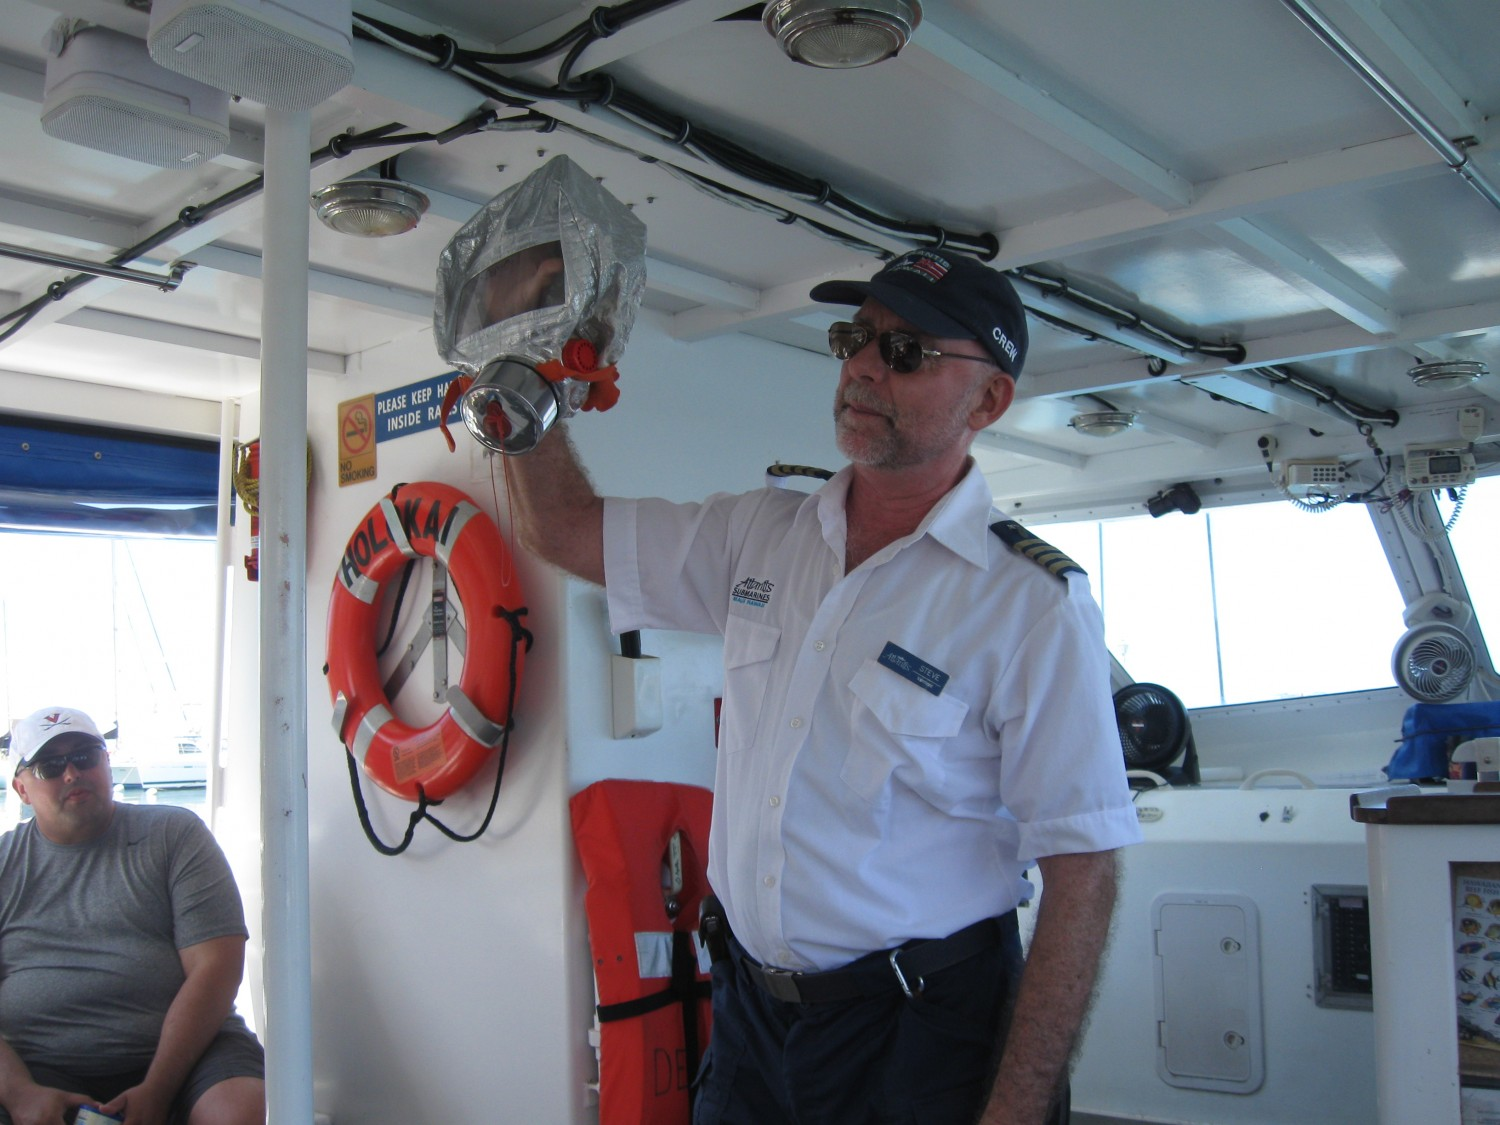 Our Submarine Tour Guide